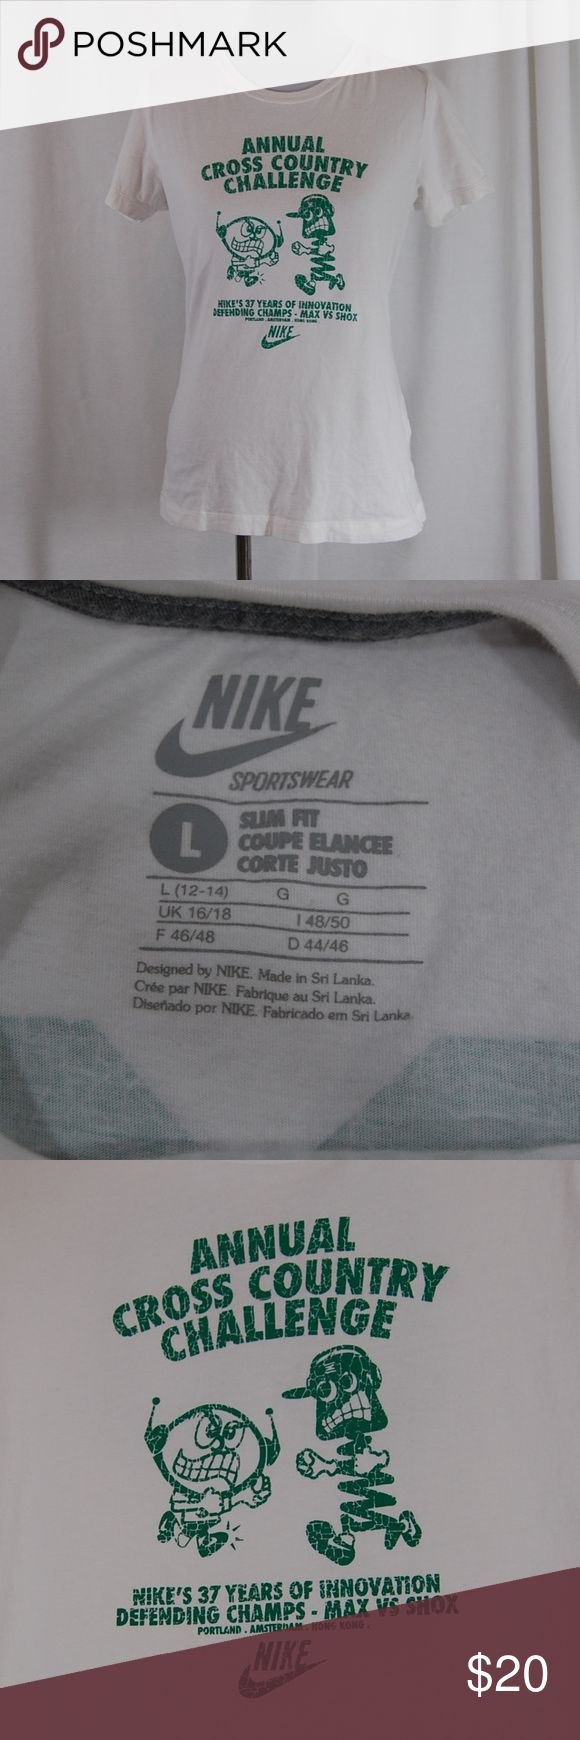 "Nike ""Annual Cross Country Challenge"" Tee (non-sale price $20)  White crew neck short sleeved shirt. Bright green image & lettering. Back of shirt has 00 in a jersey style (large and centered on the back) - see pic.  Great condition with no signs of wear.  Approximate measurements (taken flat): Bust =19"" Length = 26"" Nike Tops Tees - Short Sleeve"